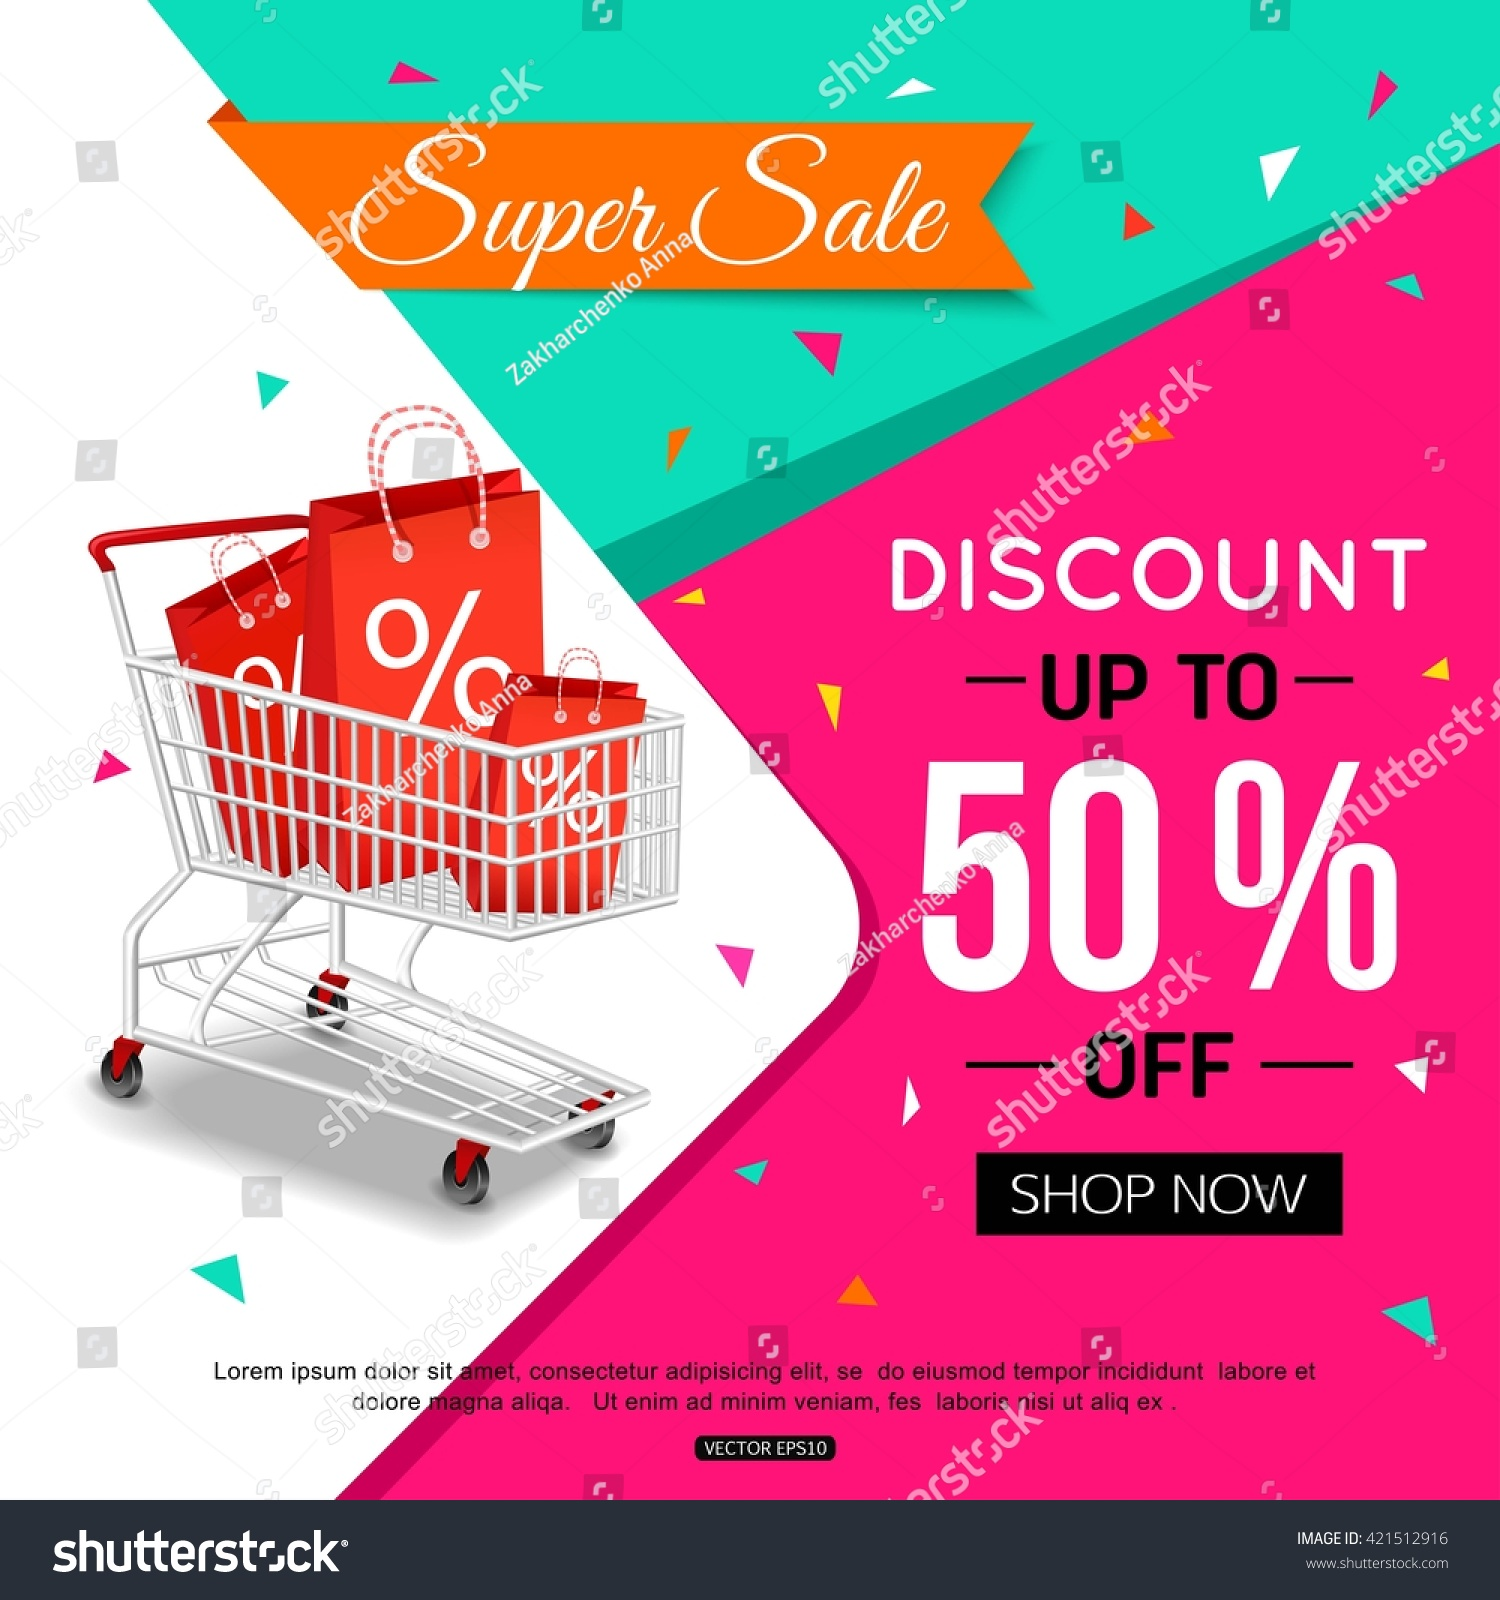 super sale banner design shop online stock vector. Black Bedroom Furniture Sets. Home Design Ideas